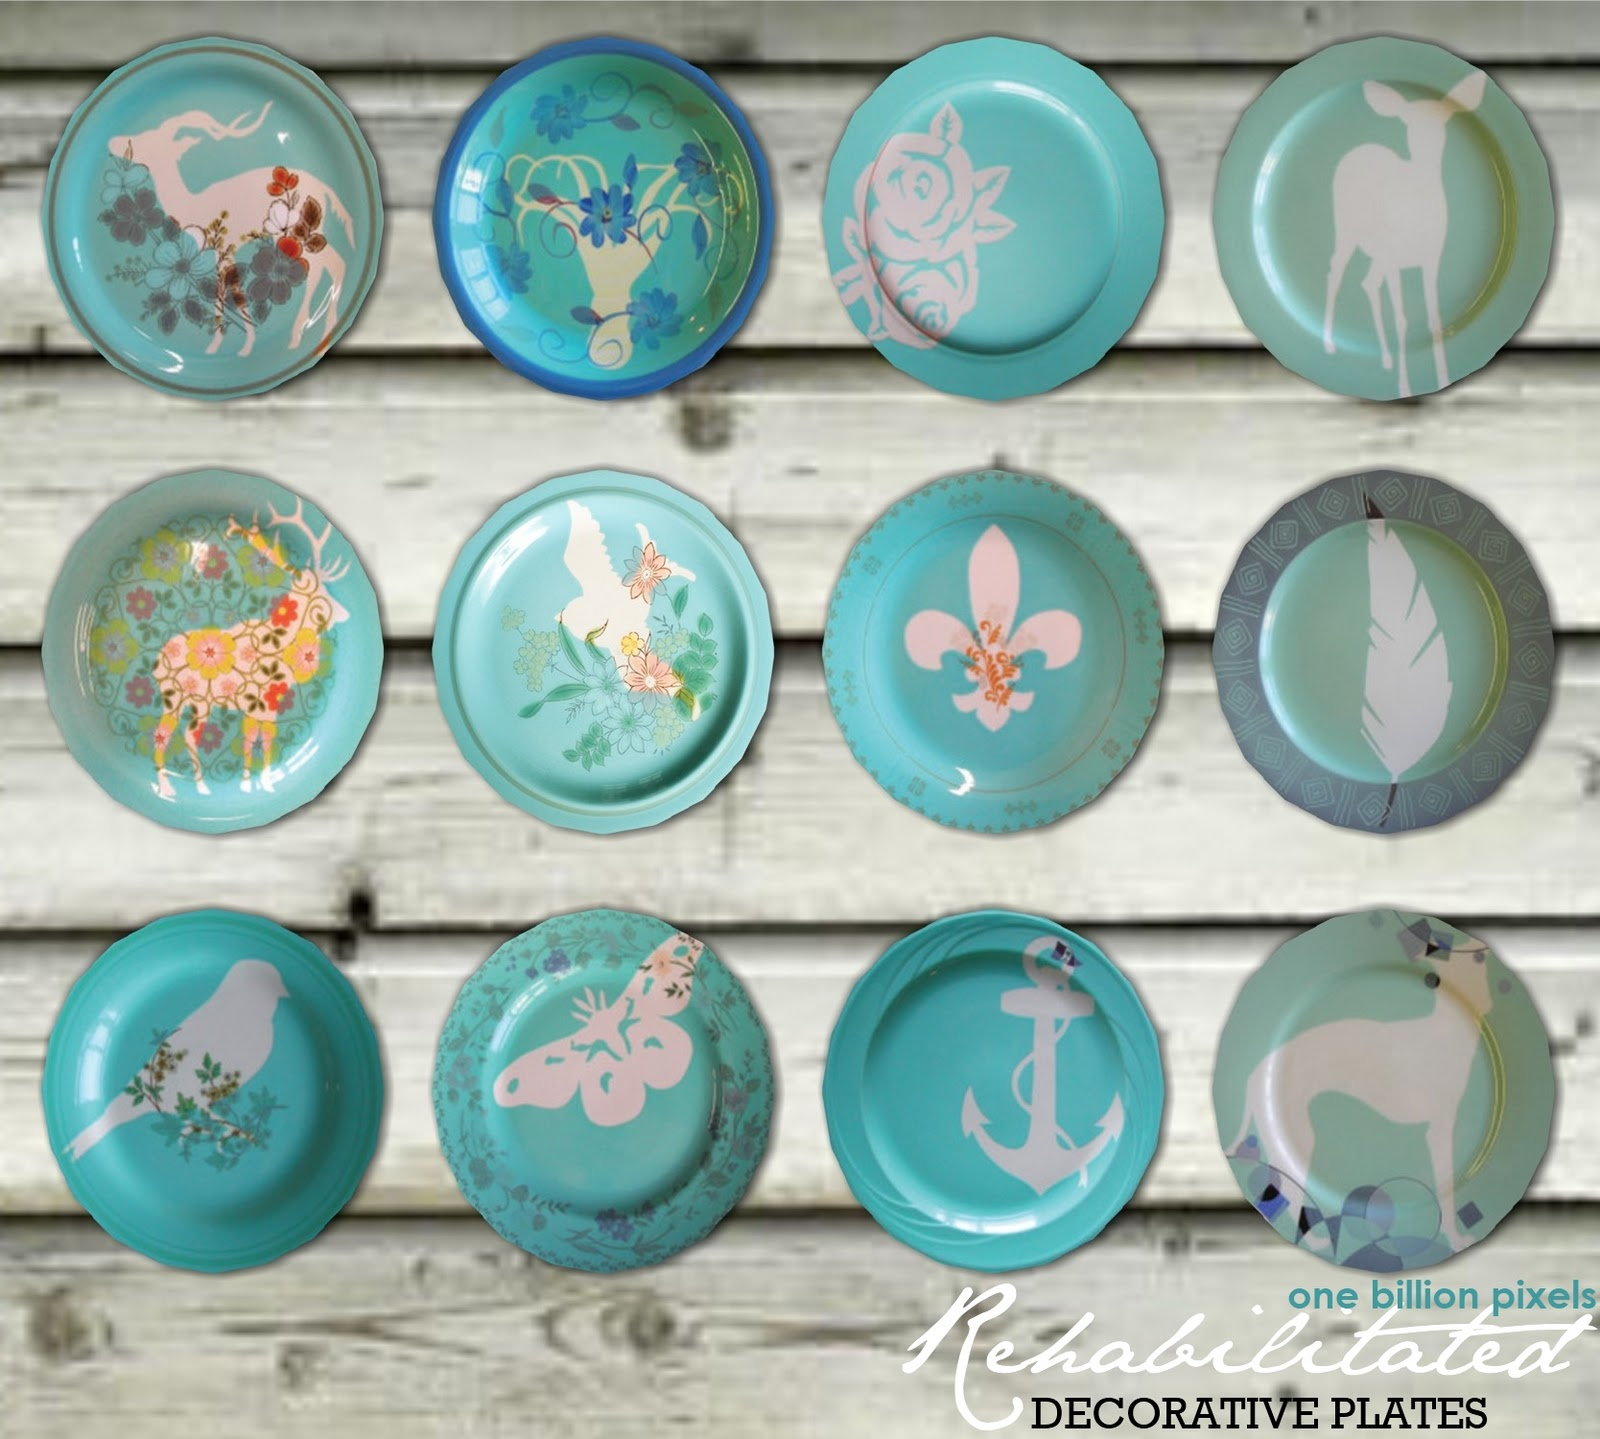 55 non default decorative plates updated now with slots for Decoration plates